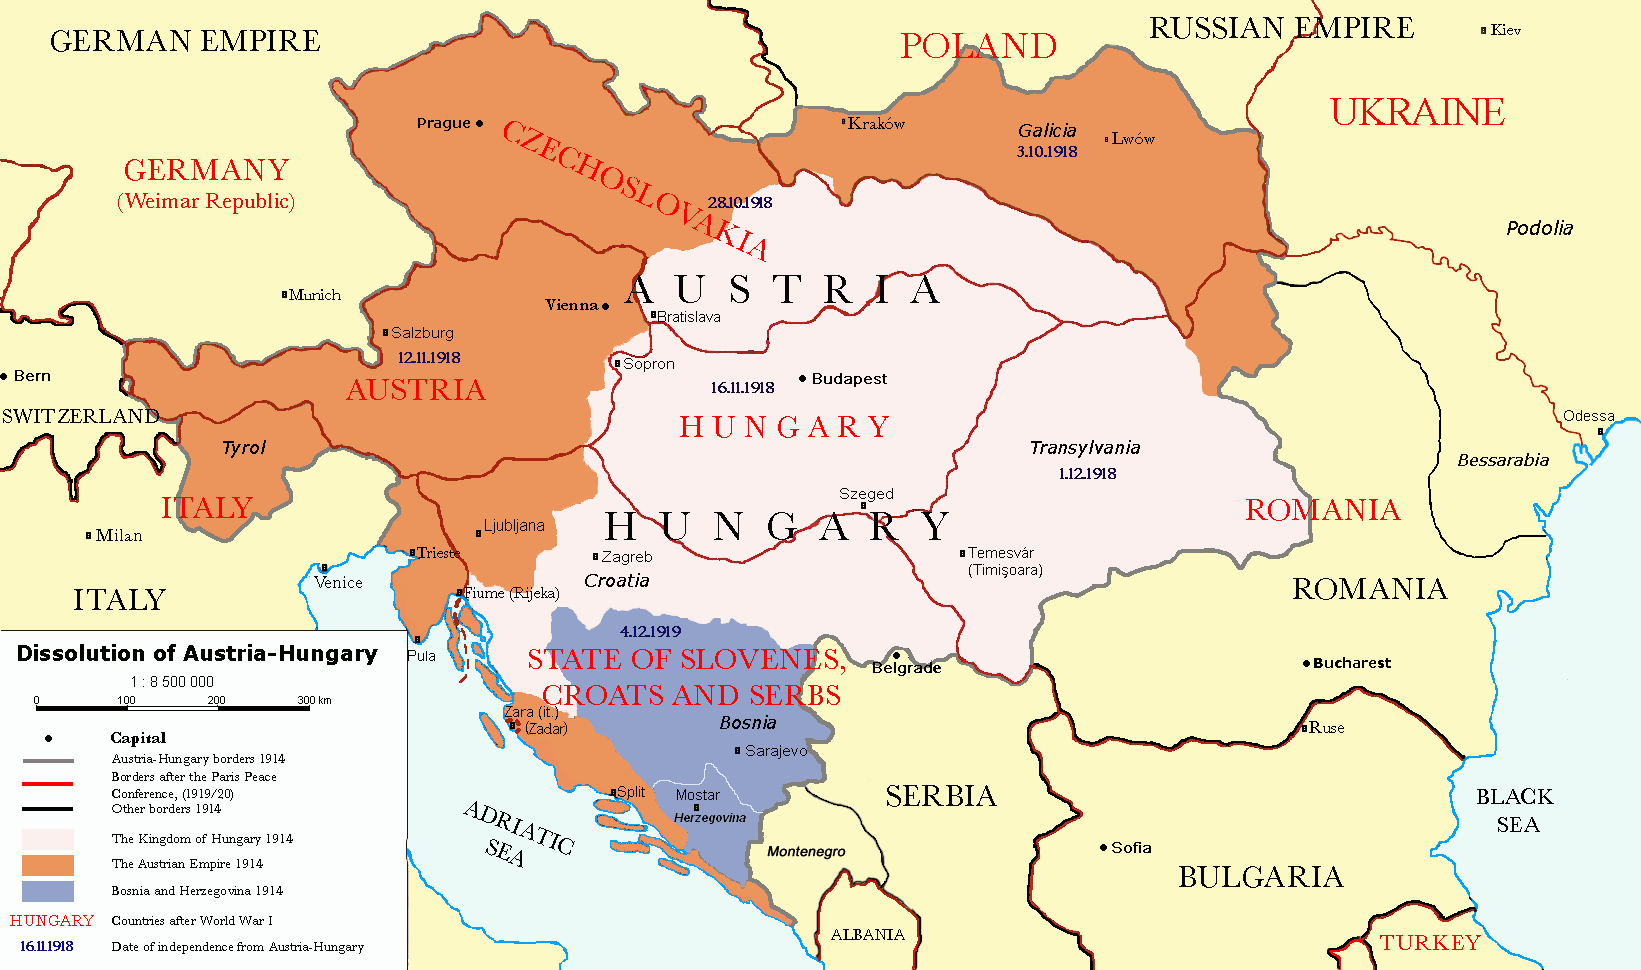 https://i0.wp.com/upload.wikimedia.org/wikipedia/commons/5/50/Dissolution_of_Austria-Hungary.png